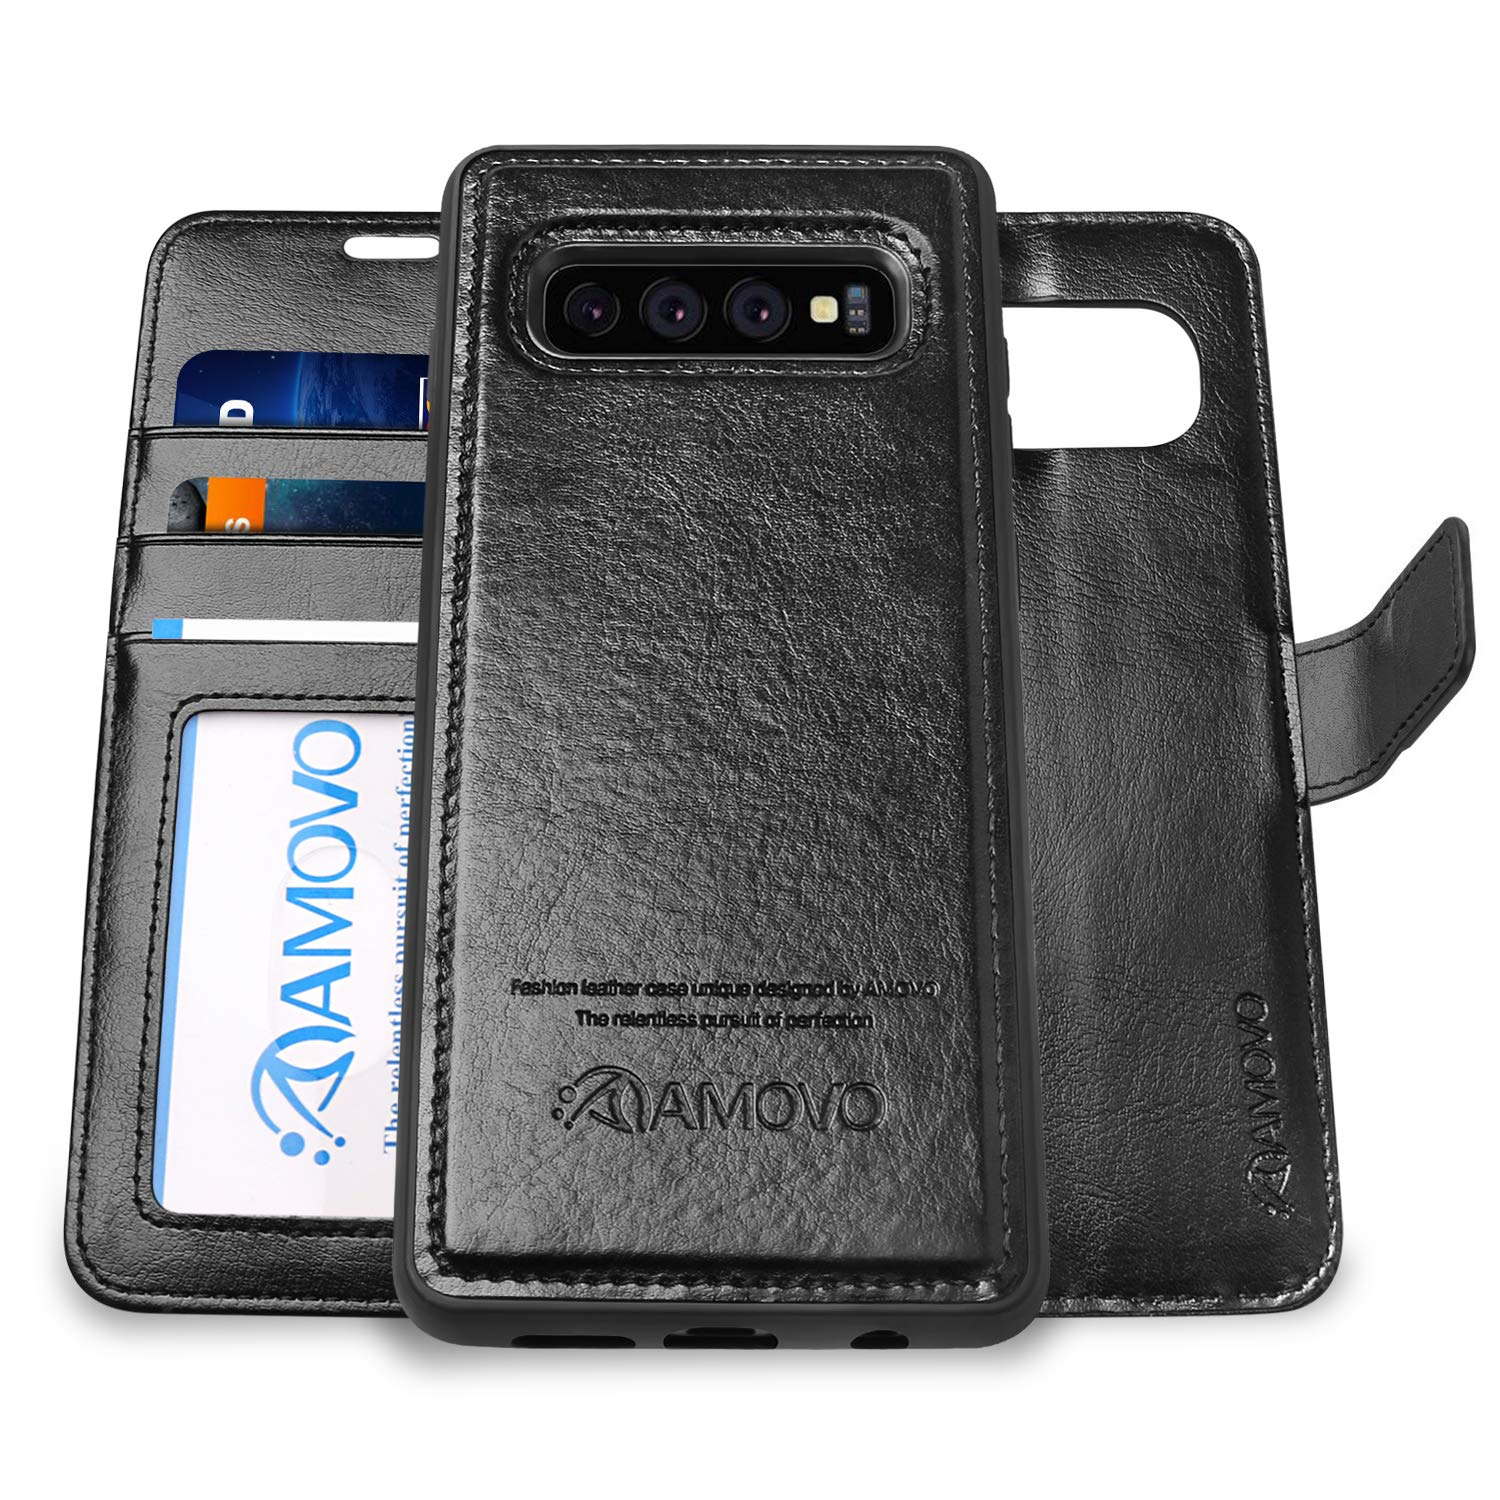 AMOVO Case for Galaxy S10 Plus/S10+ (6.4'') [2 in 1] Samsung Galaxy S10 Plus Wallet Case Detachable [Vegan Leather] [Wrist Strap] S10+ Flip Case with Gift Box Package (S10Plus (6.4'') Black) by Amovo